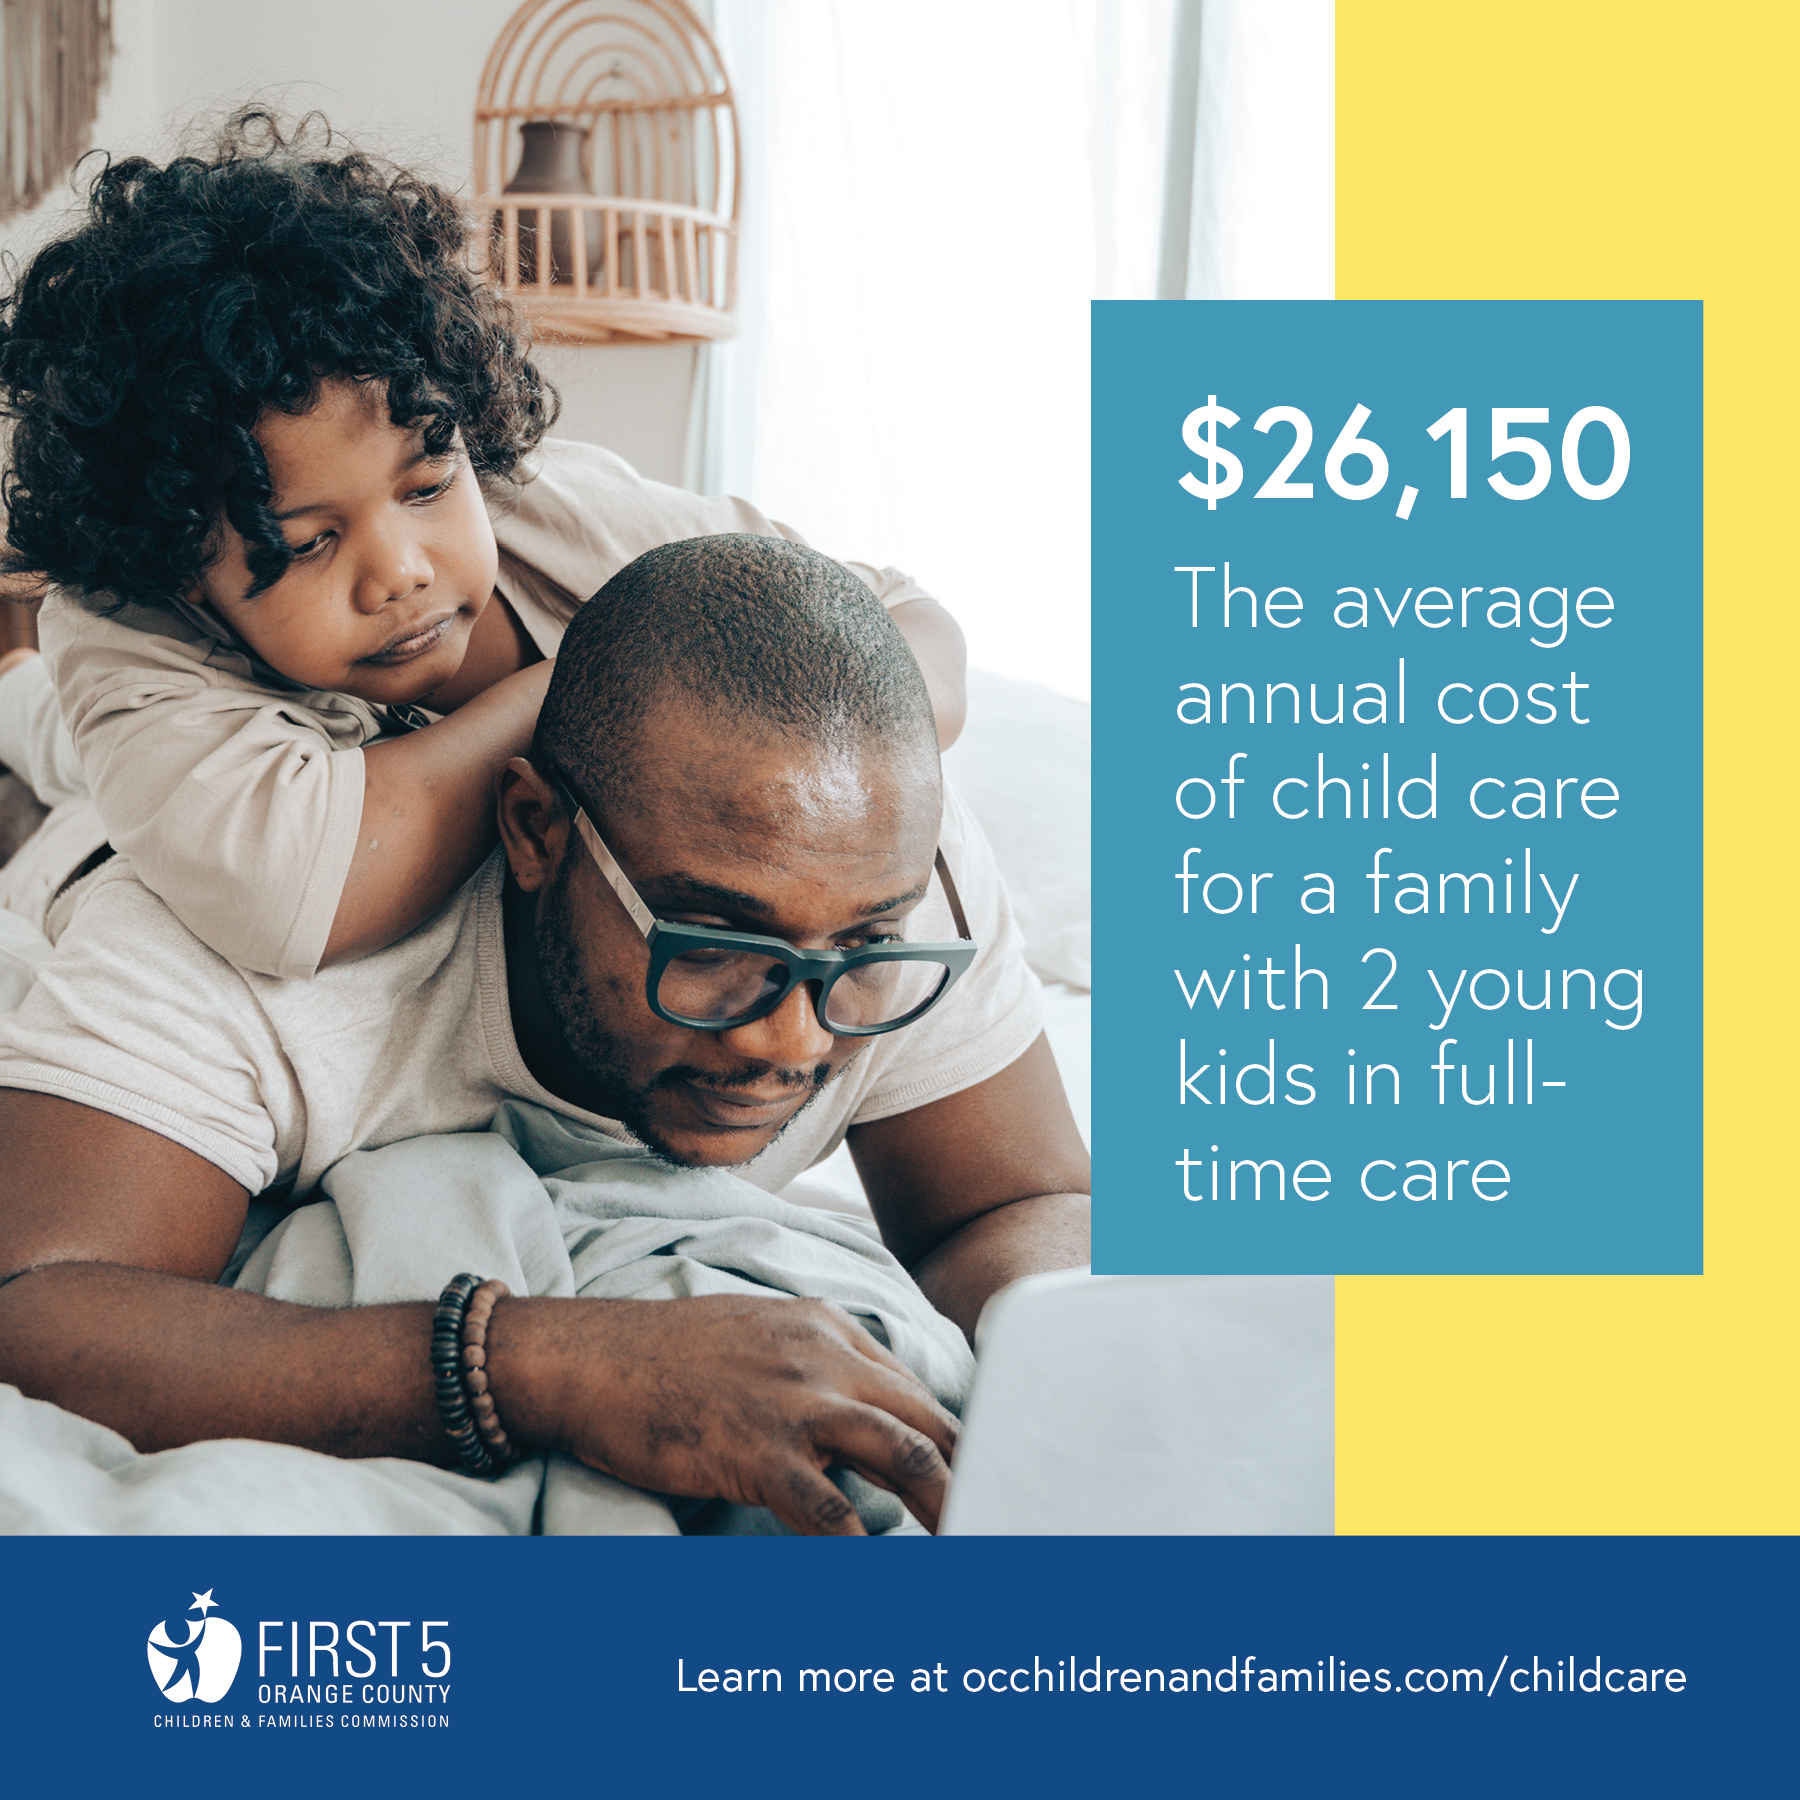 $26,150 - the average annual cost of child care for a family with 2 young kids in full-time care